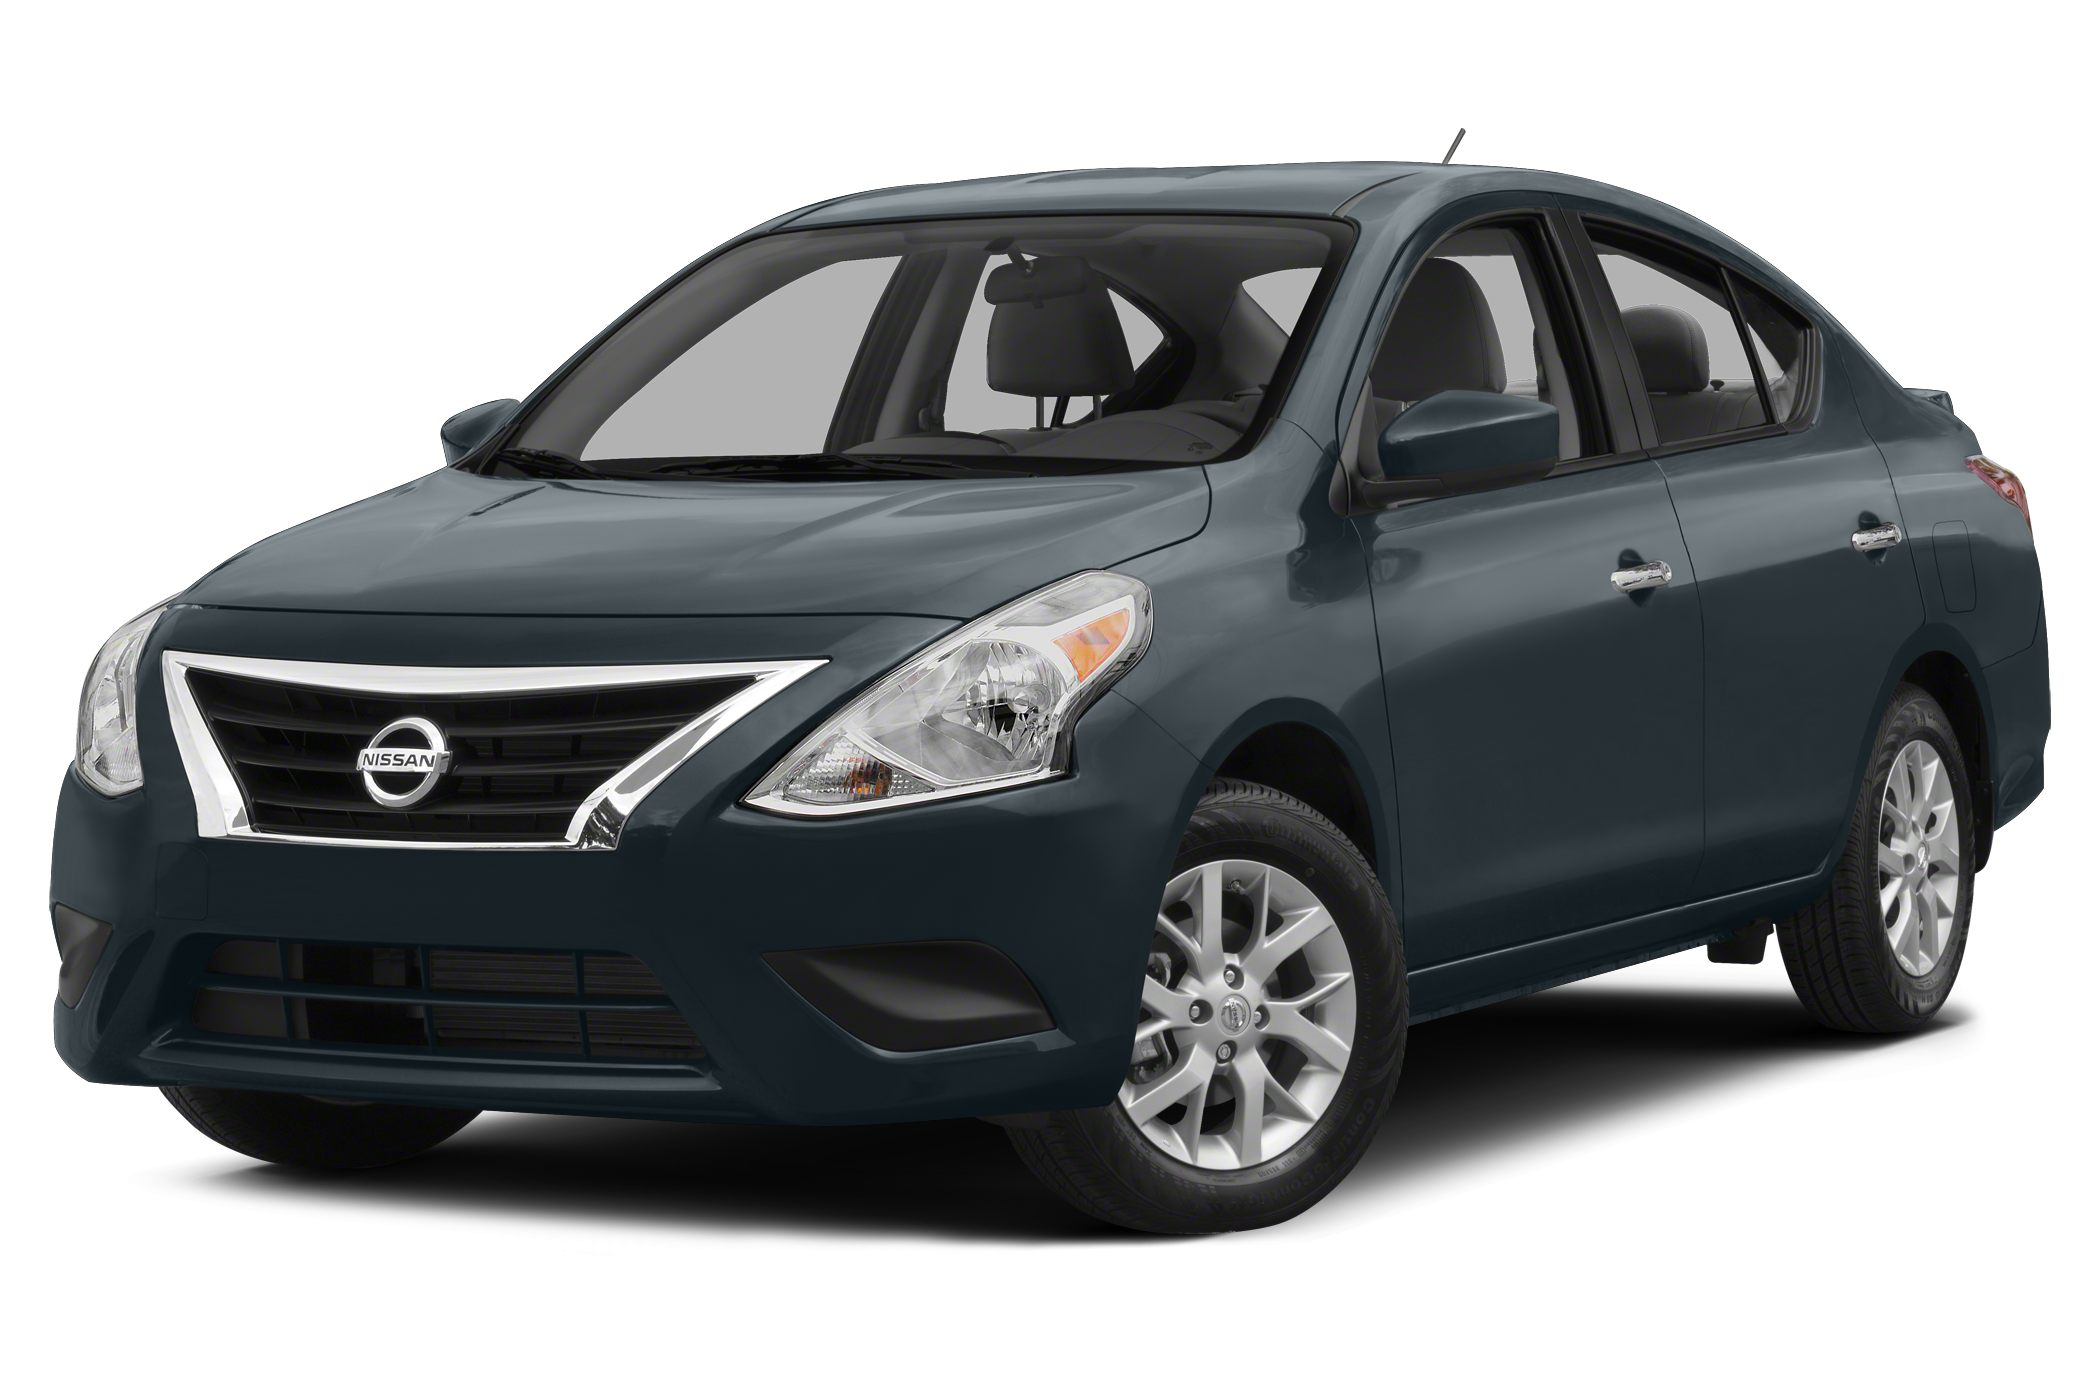 2015 Nissan Versa 1.6 S+ Sedan for sale in Beech Island for $13,477 with 10 miles